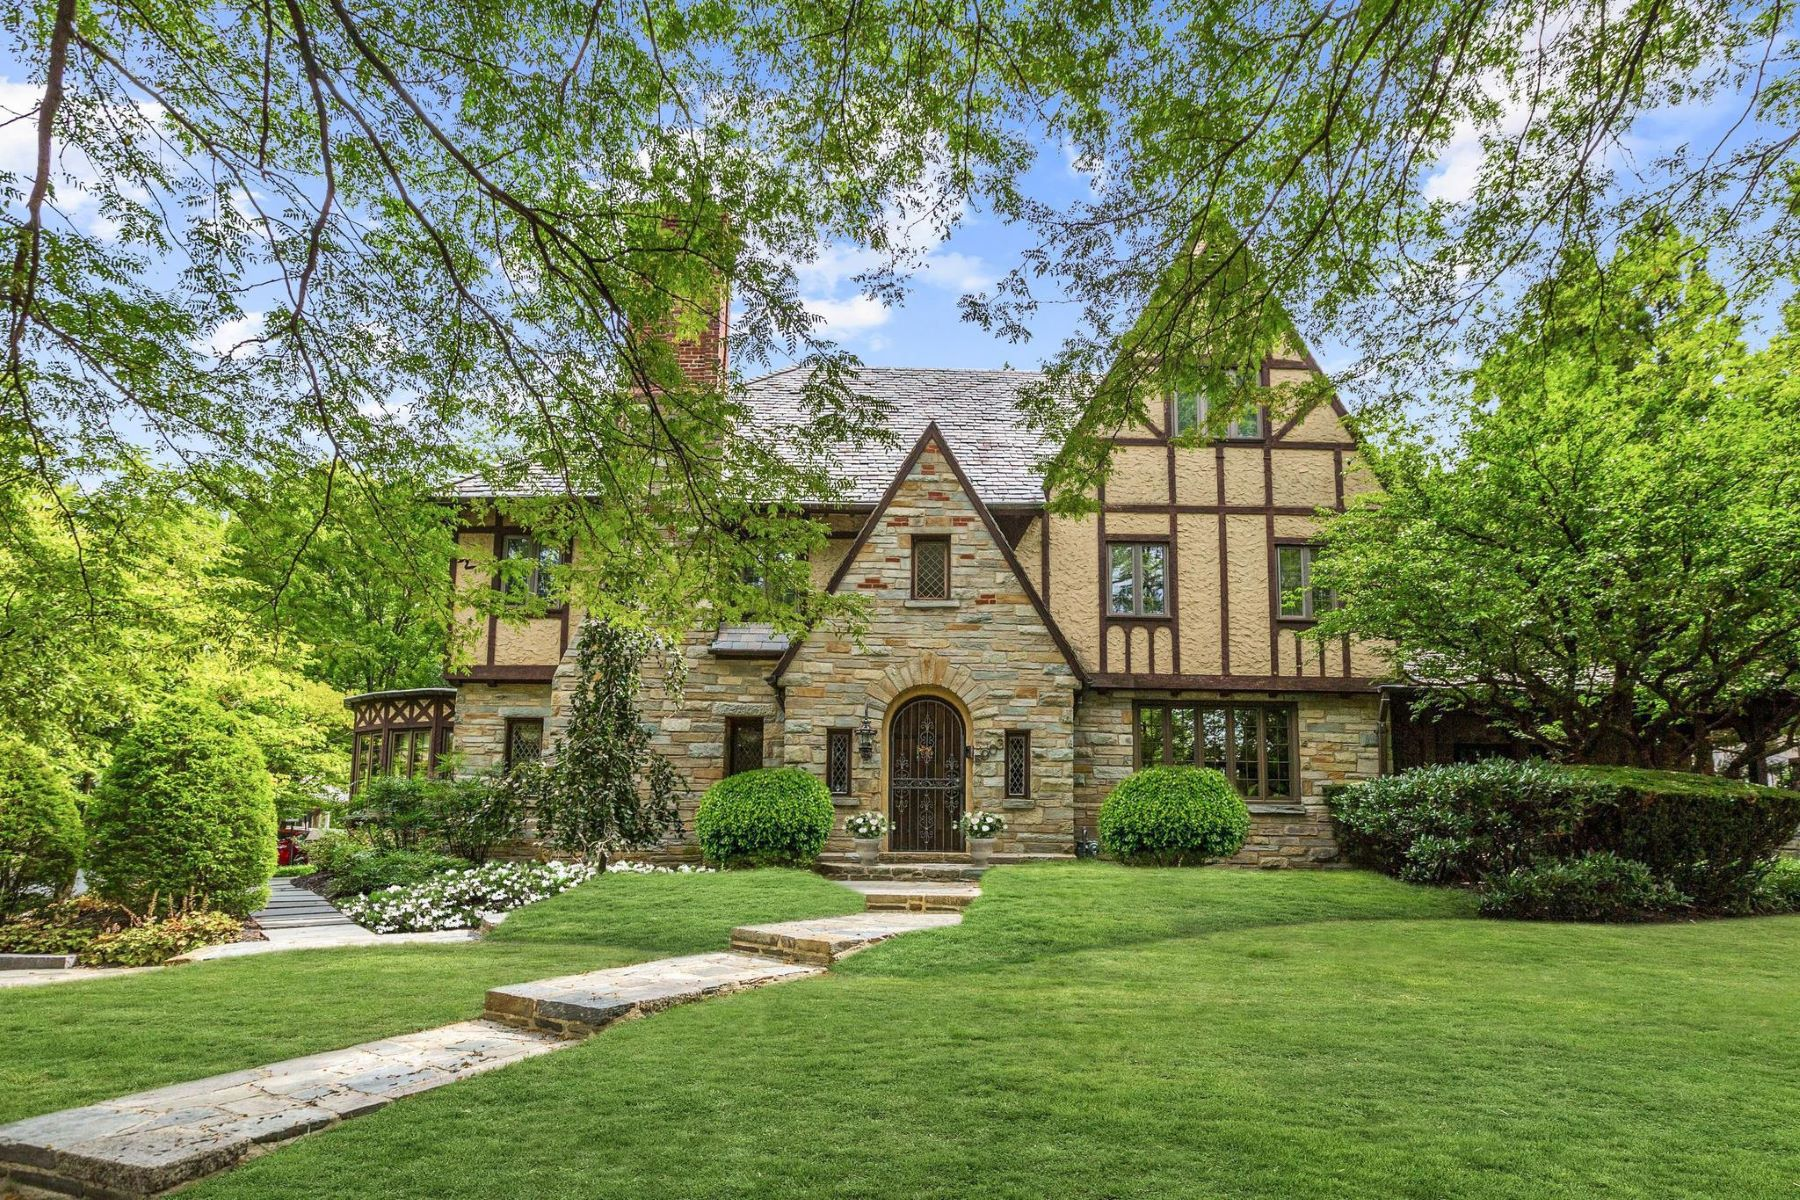 Single Family Homes for Active at 5903 Connecticut Ave Chevy Chase, Maryland 20815 United States